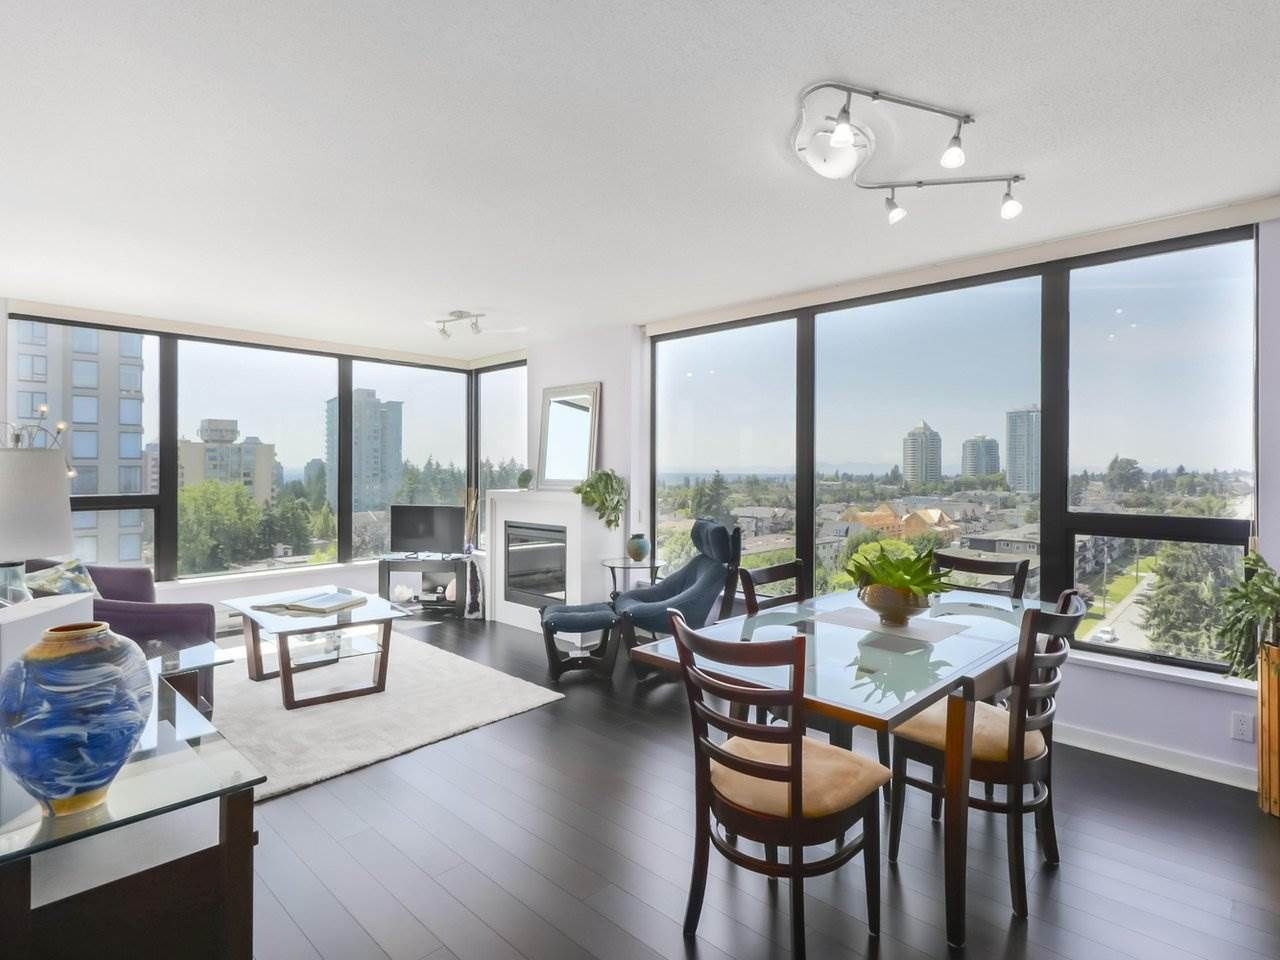 """Main Photo: 1002 7108 COLLIER Street in Burnaby: Highgate Condo for sale in """"Arcadia West"""" (Burnaby South)  : MLS®# R2476745"""